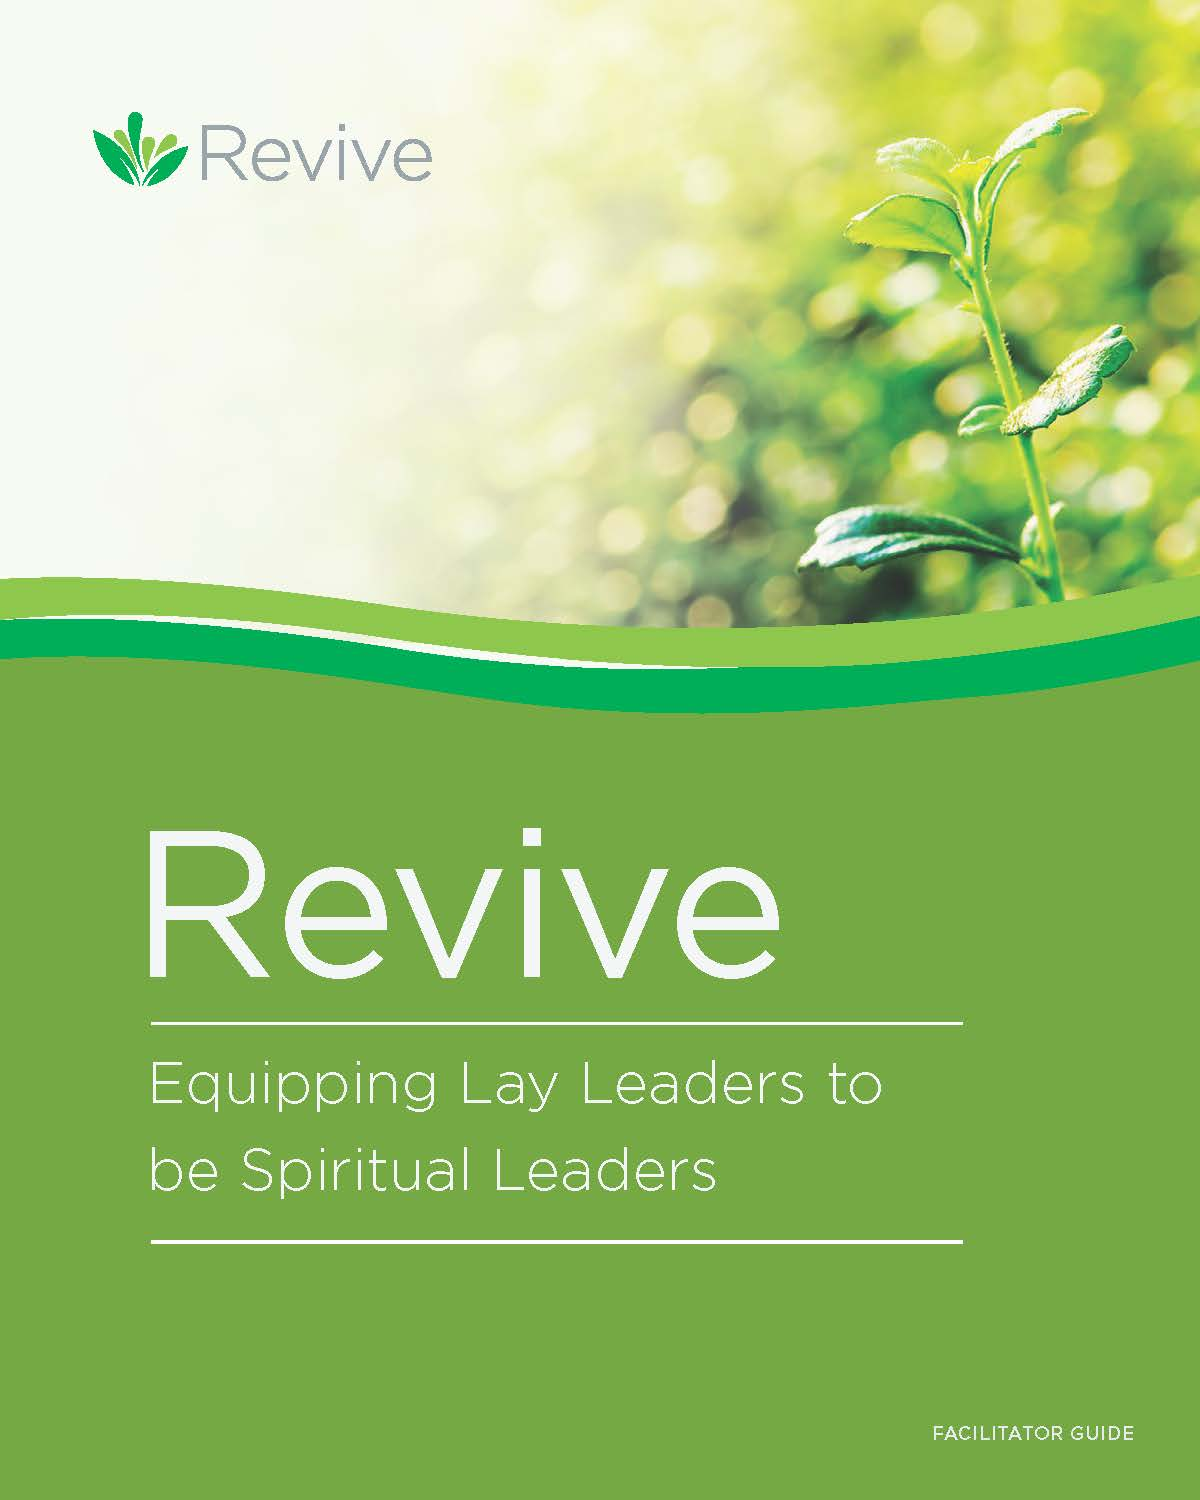 Revive - Small-group discipleship program